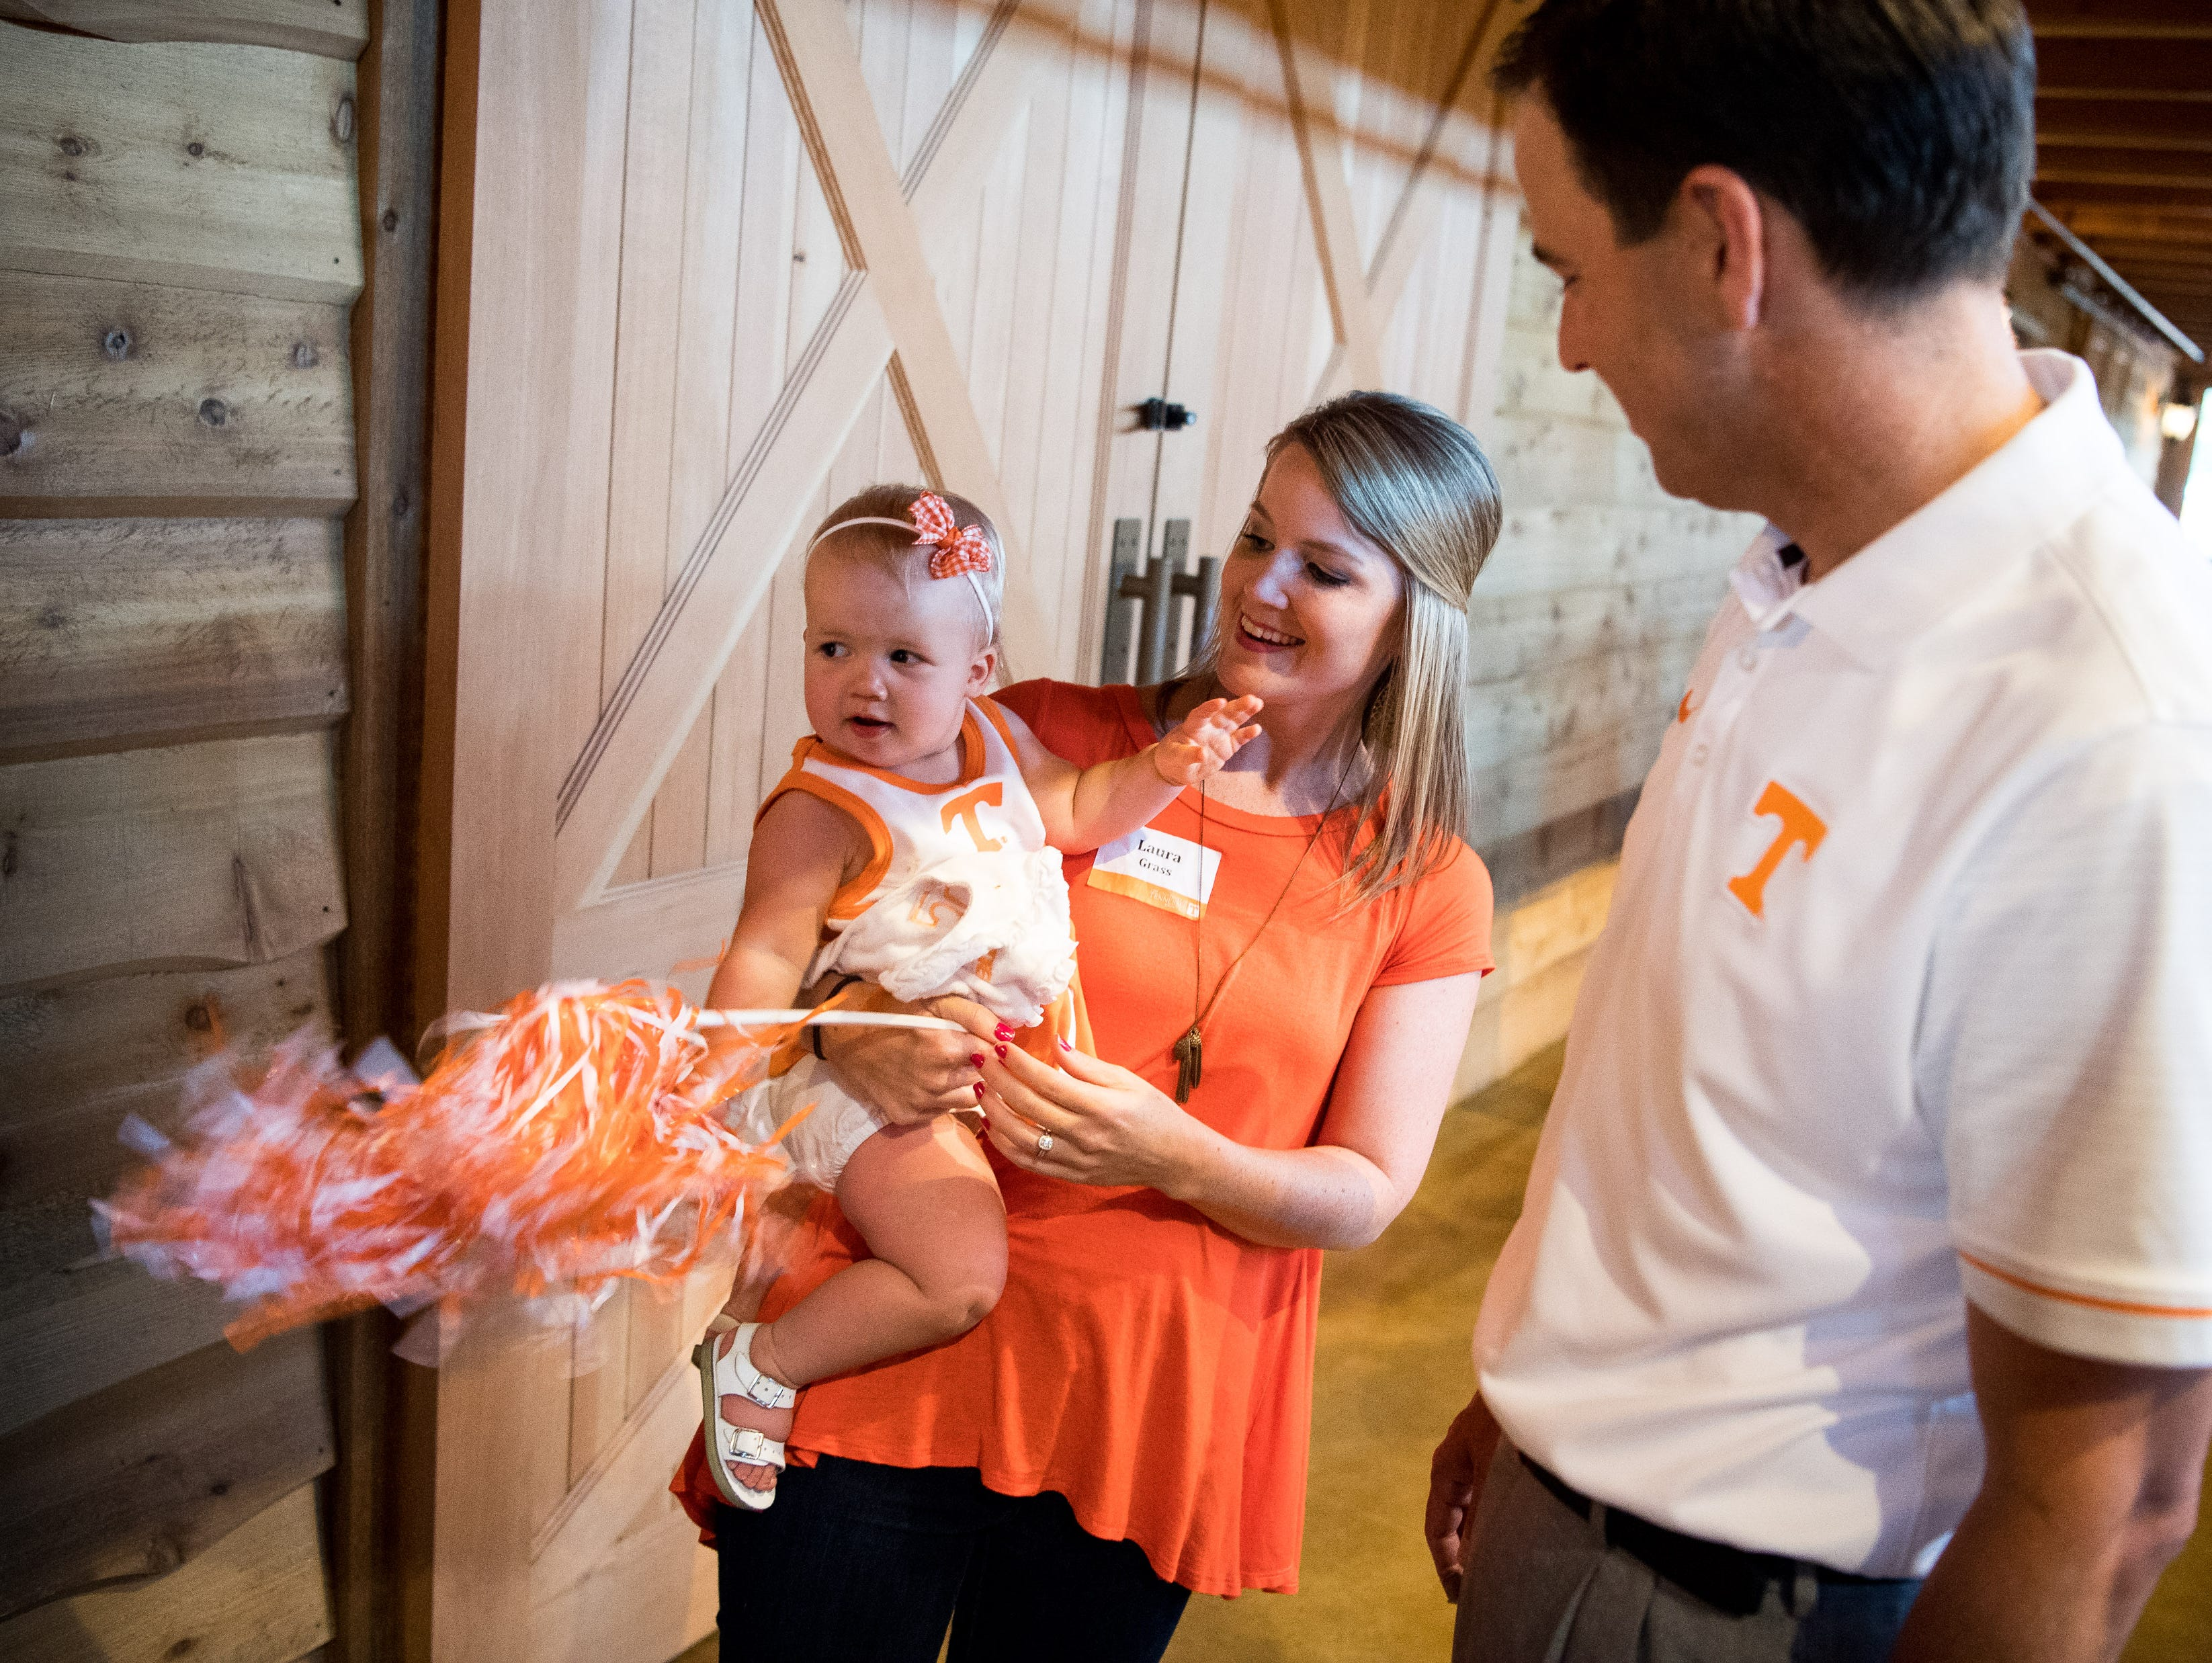 John Currie, University of Tennessee vice chancellor and director of athletics, greets Laura Grass and her 16-month-old daughter Caroline during a Big Orange Caravan event at The Barn at Sycamore Farms in Arrington, Tenn., Monday, July 10, 2017.